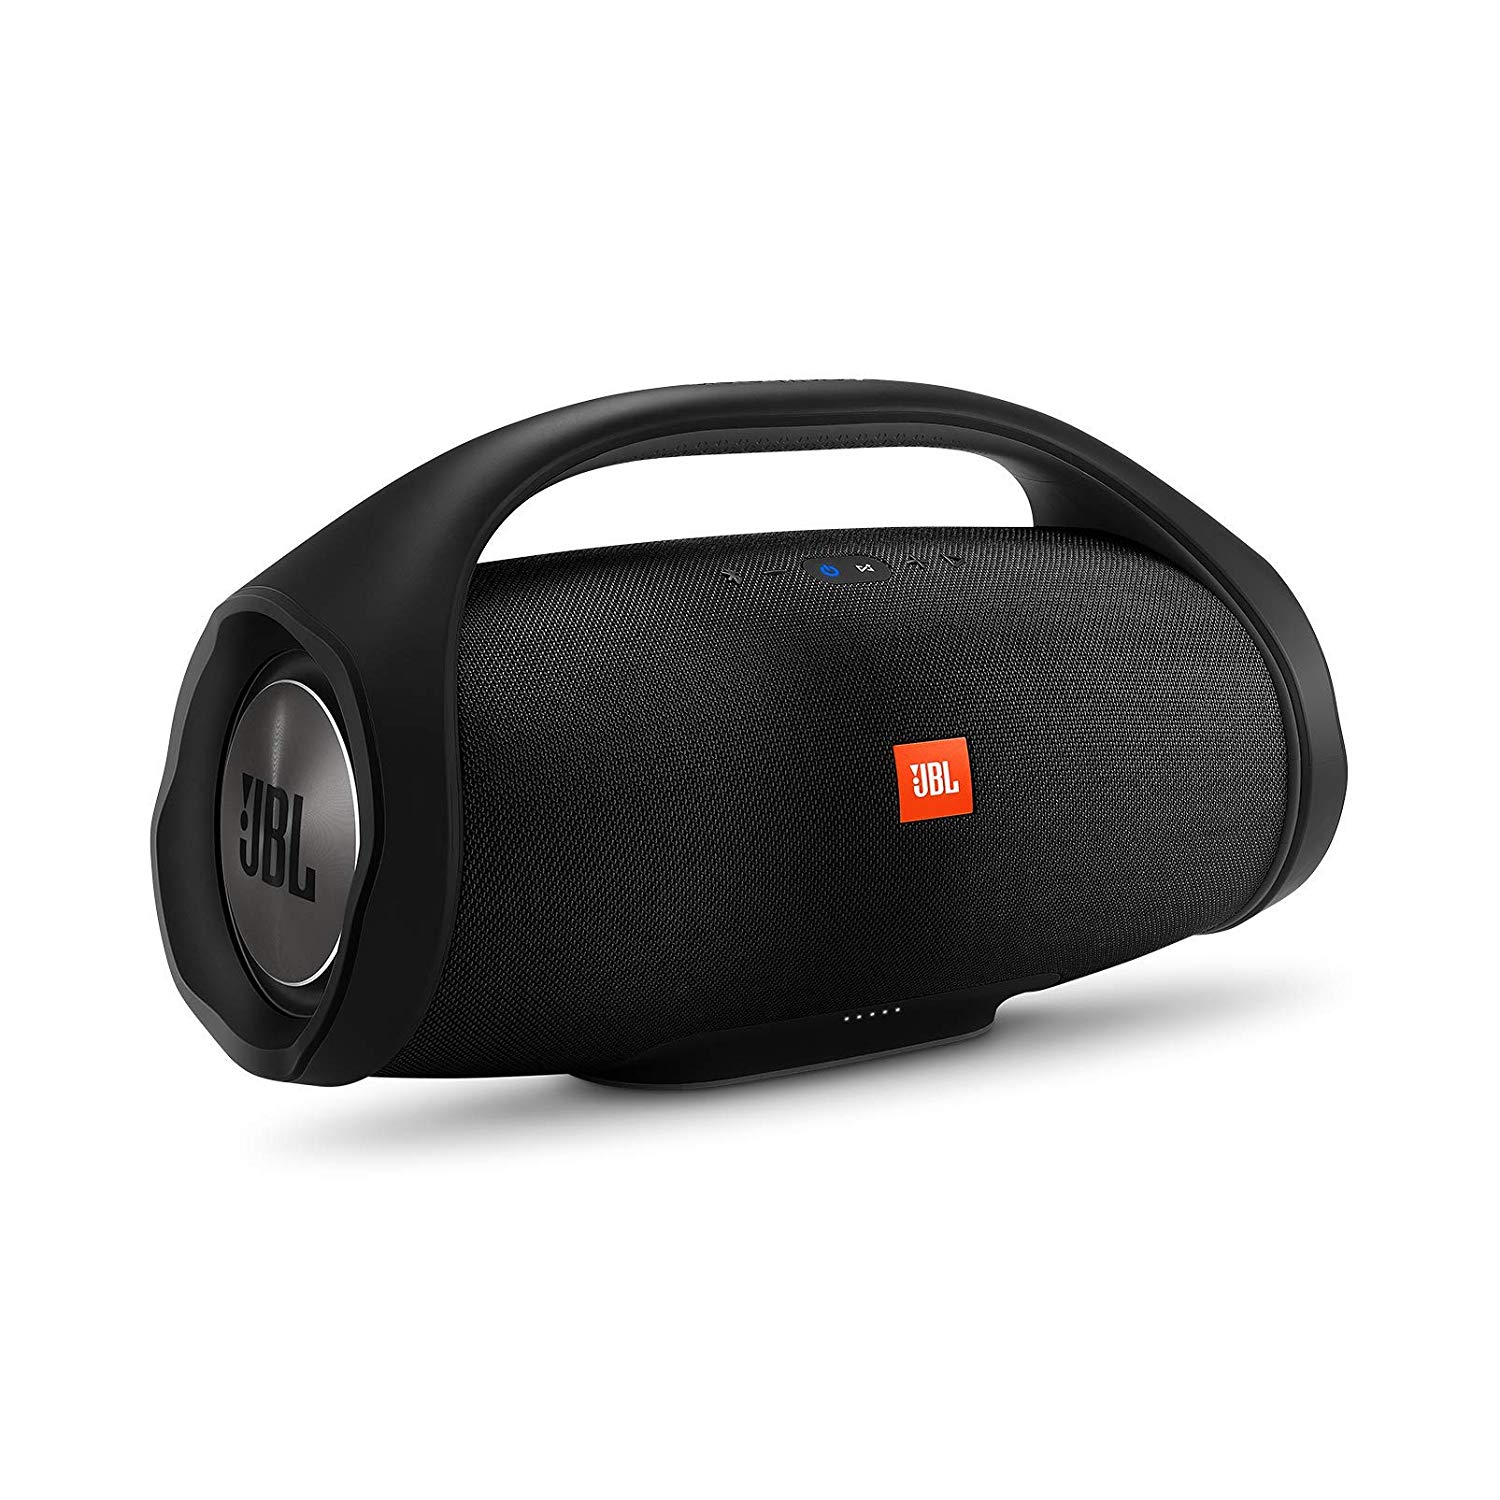 JBL Boombox - Waterproof Speakers